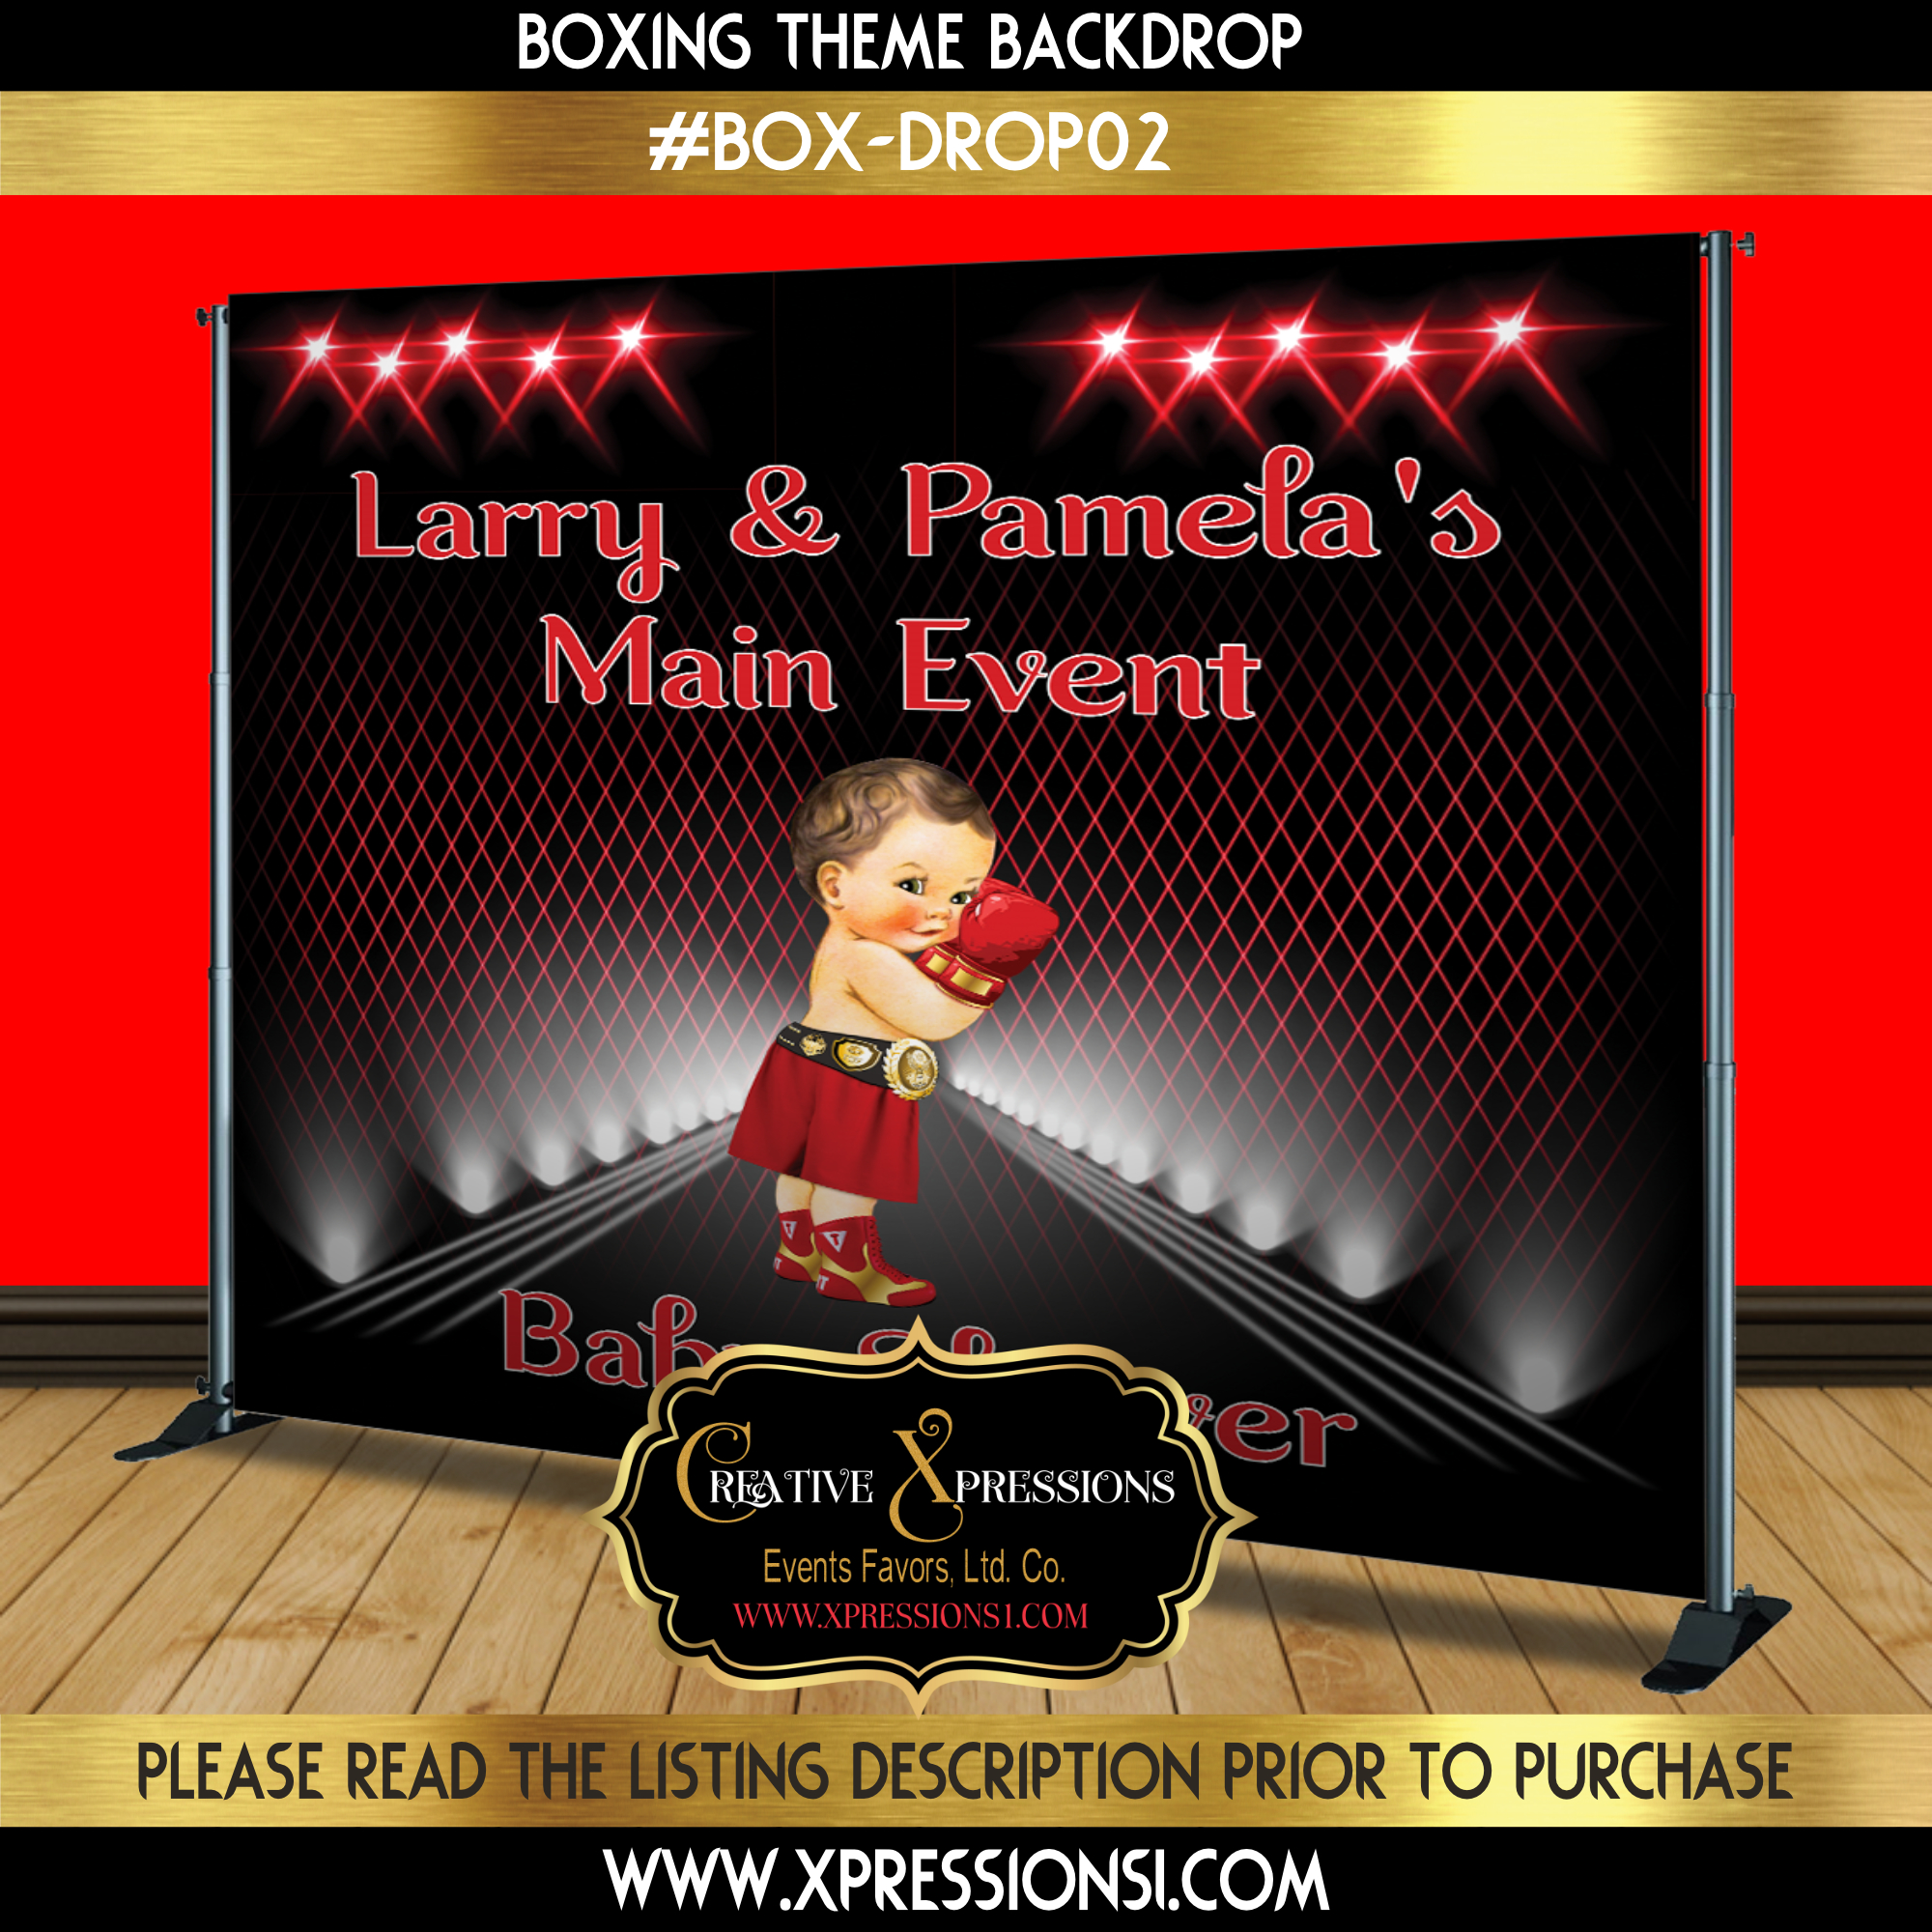 Red Boxing Backdrop